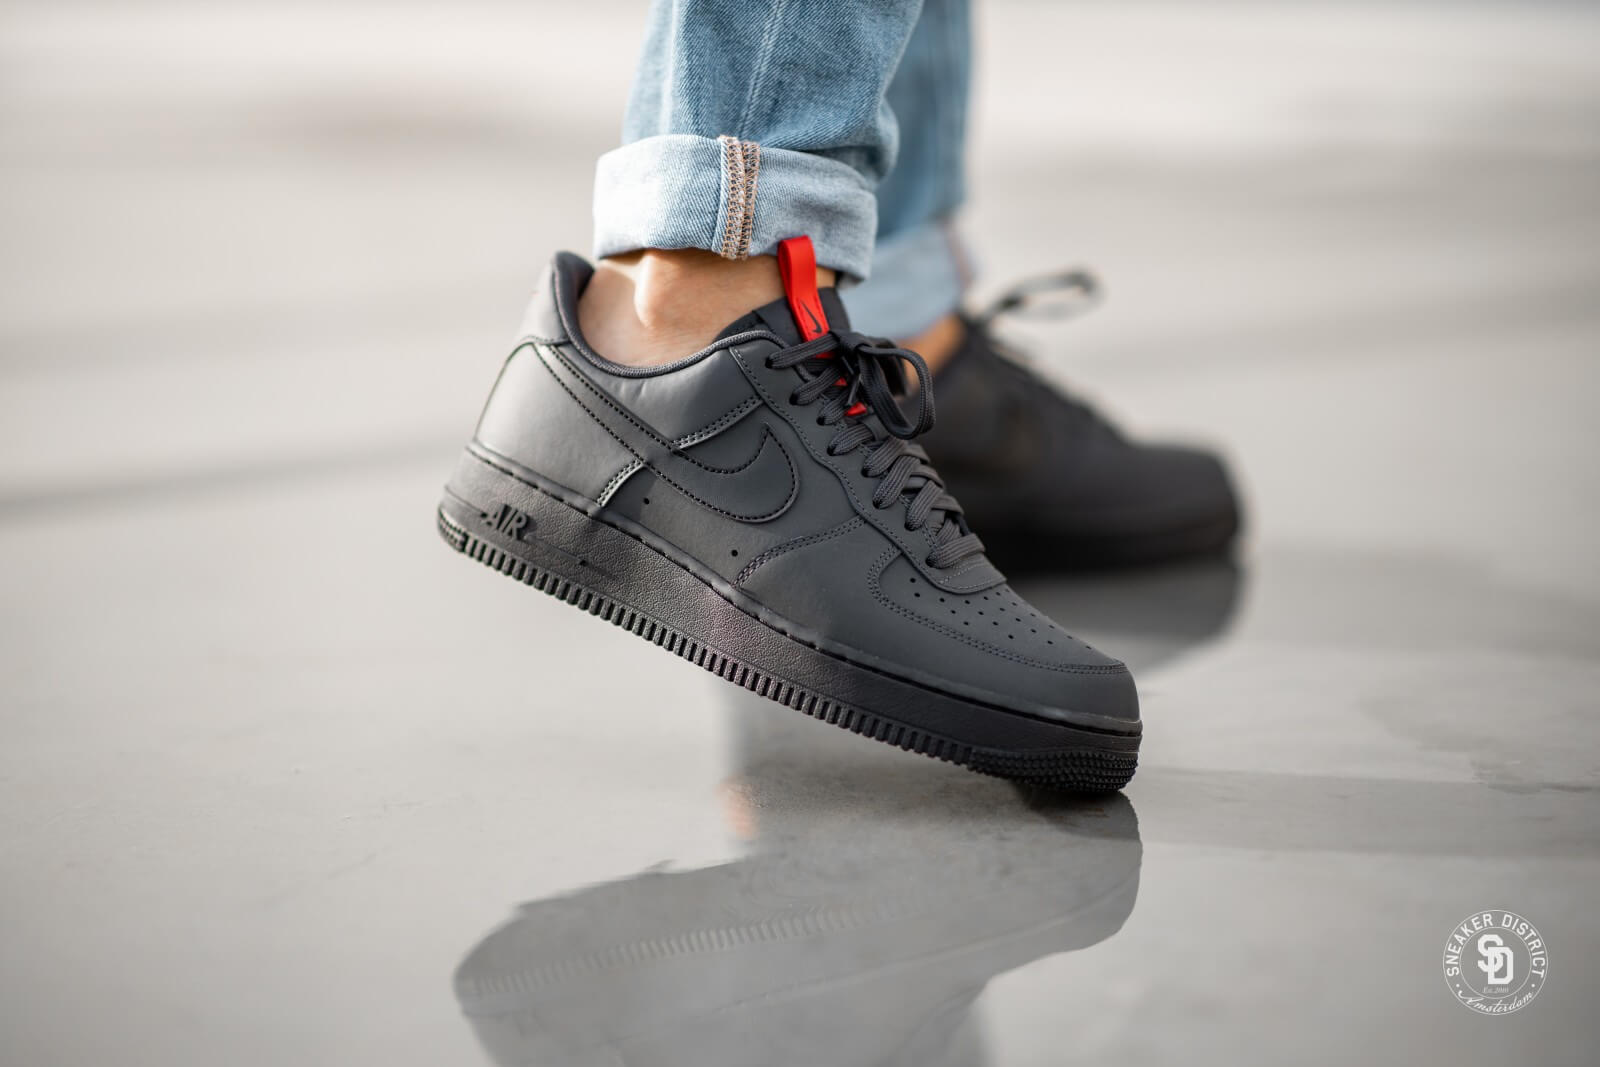 Nike Air Force 1 '07 AnthraciteBlack University Red